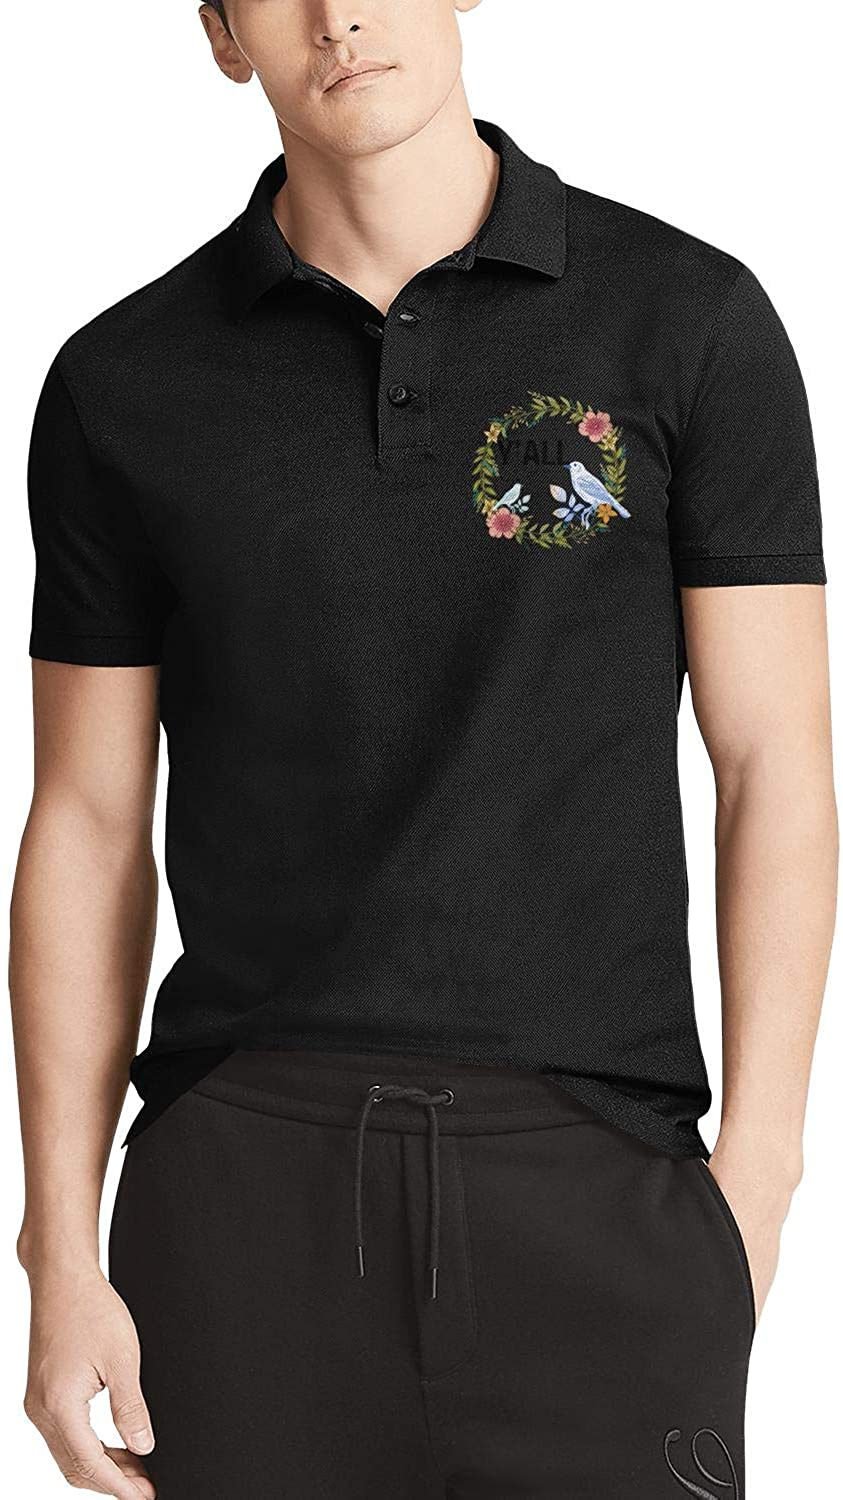 Welcome Owls- Cotton Polo Shirts for Men Simple Version Classic Color